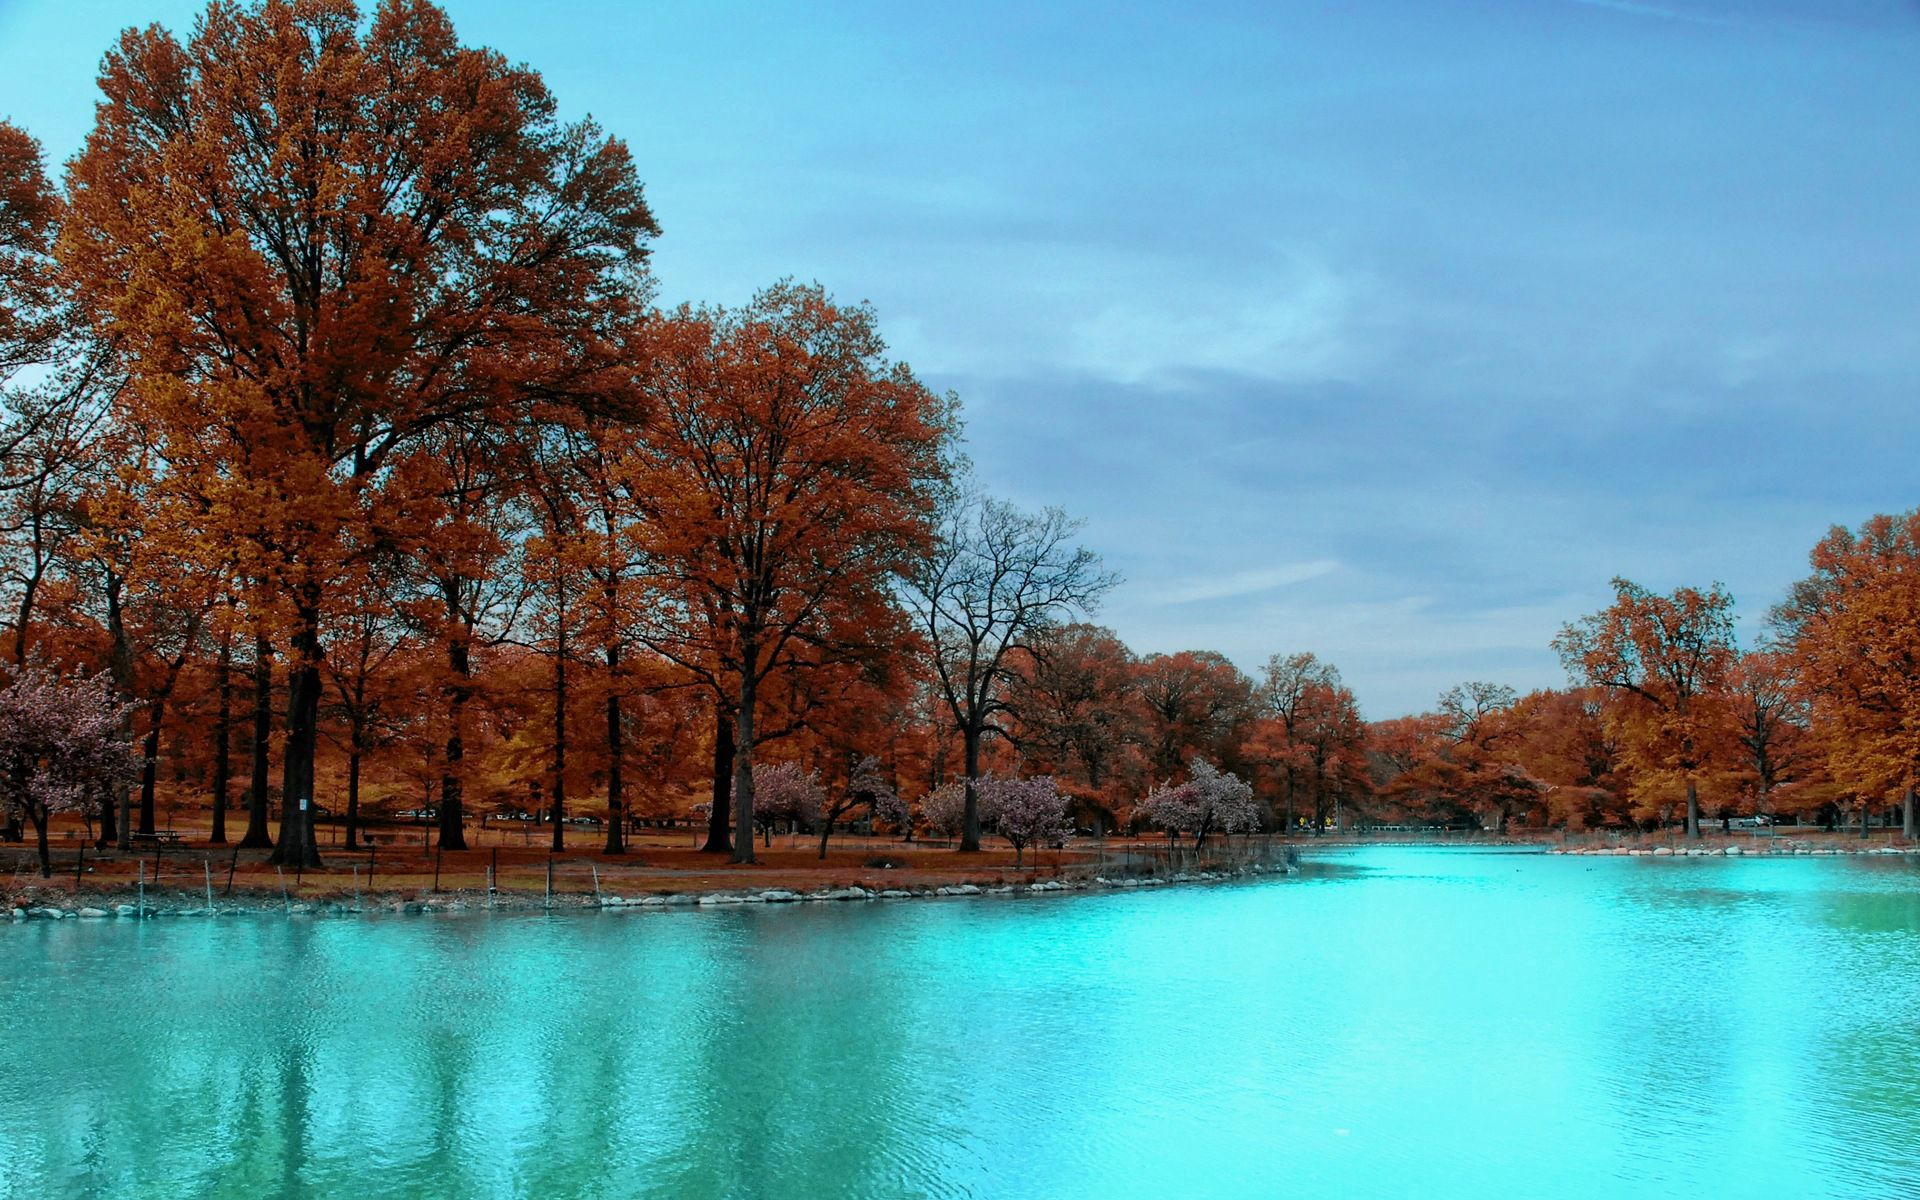 118269 download wallpaper Nature, Trees, Autumn, Park, Blue Water screensavers and pictures for free